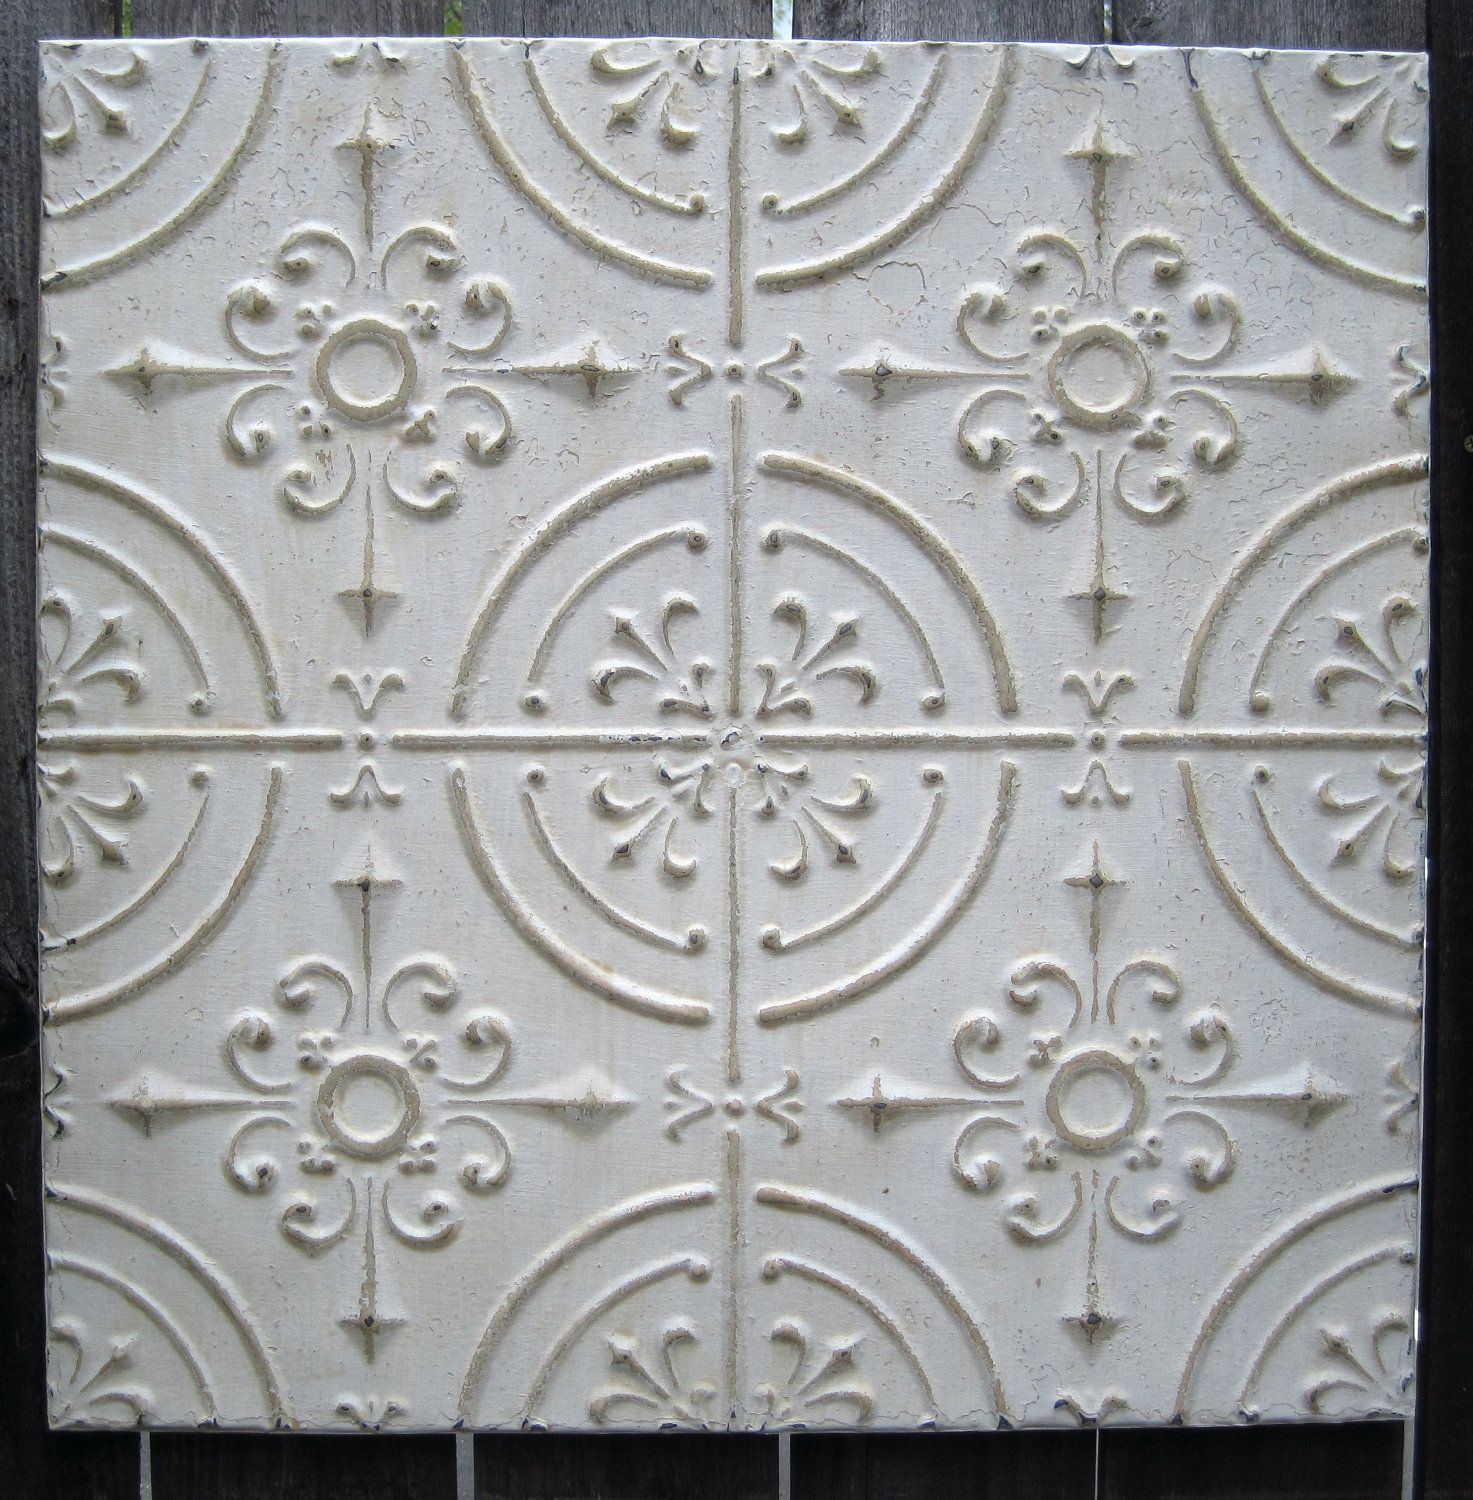 Unusual 20 X 20 Ceramic Tile Tiny 2X4 Subway Tile Regular 3X6 Subway Tile Backsplash Acoustic Tile Ceiling Old Adhesive For Ceiling Tiles FreshAluminum Tiles Backsplash 2\u0027x2\u0027 Antique Ceiling Tin Tile Circa 1910. Off White FRAMED Ready To ..